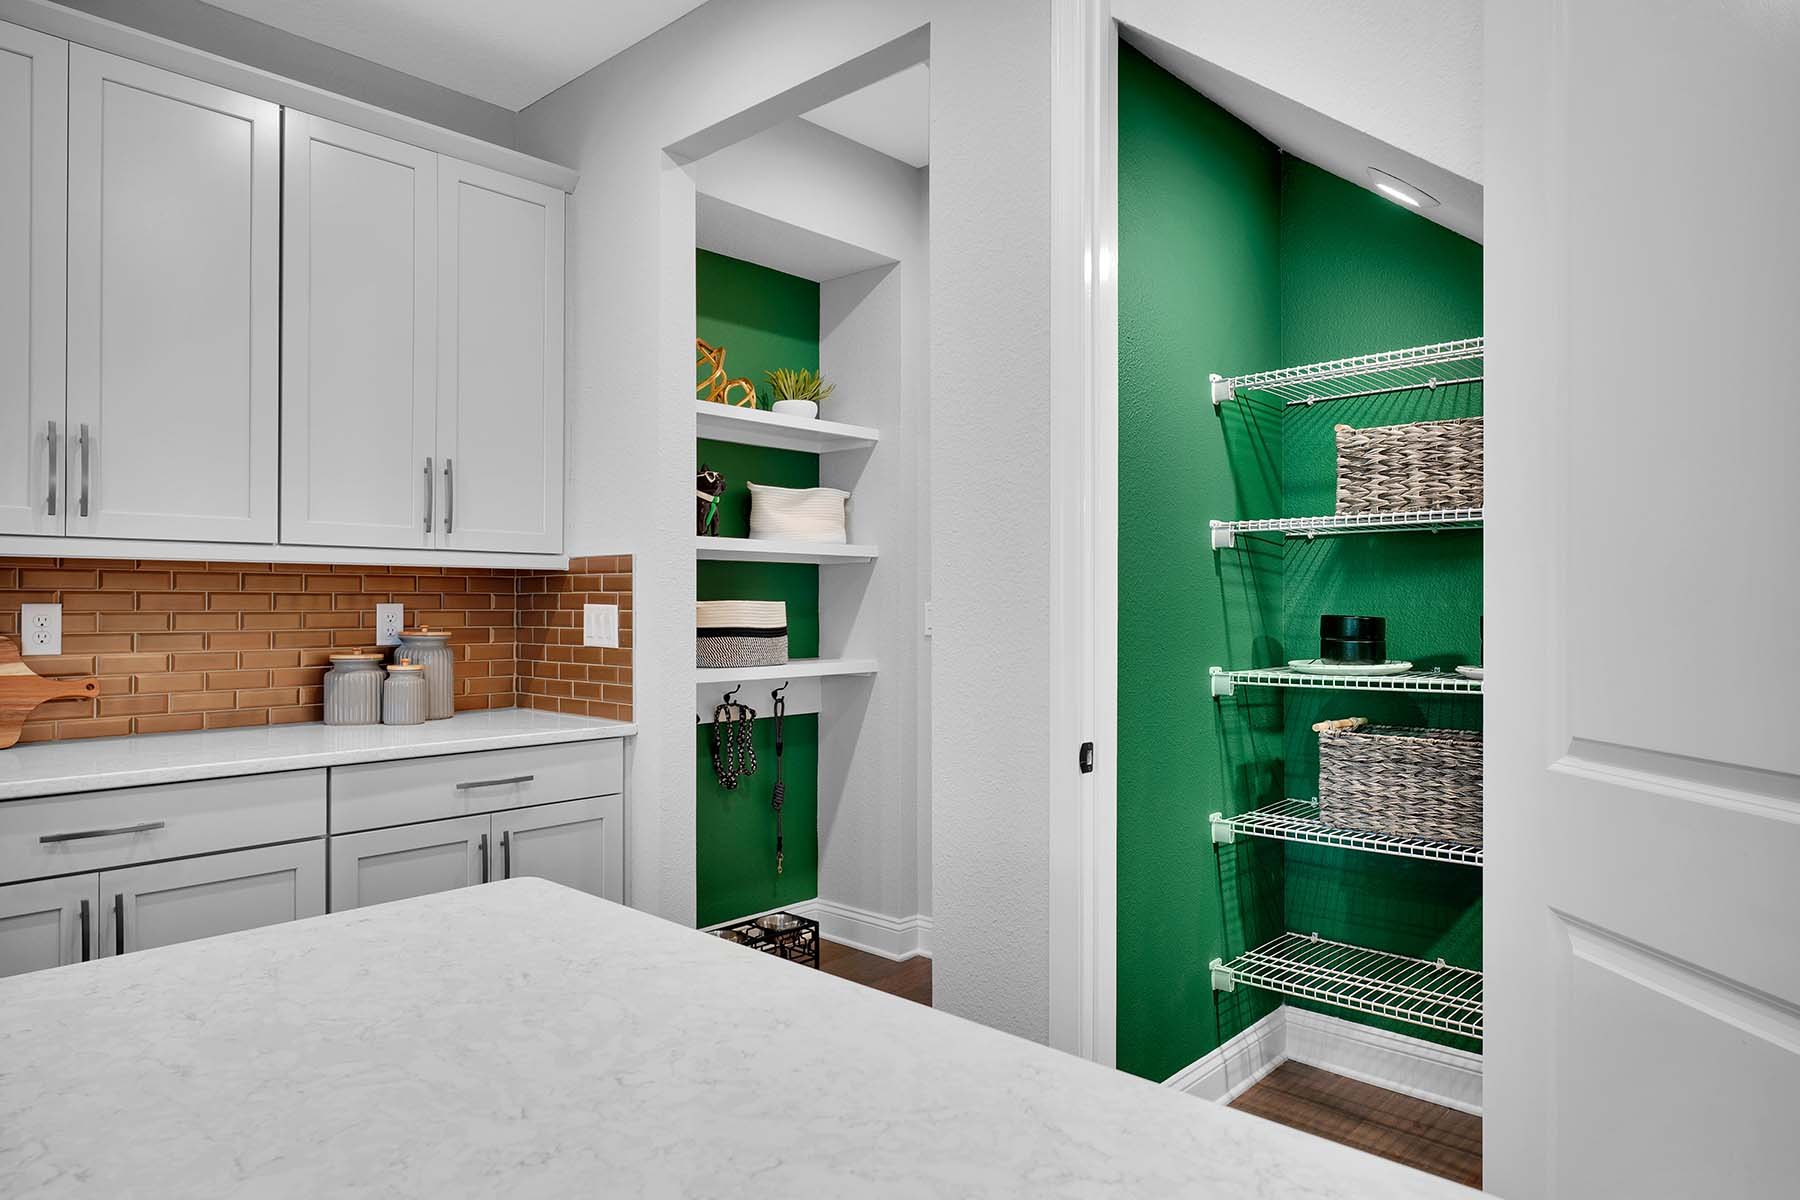 Talise Plan Pantry at Pablo Cove in Jacksonville Florida by Mattamy Homes